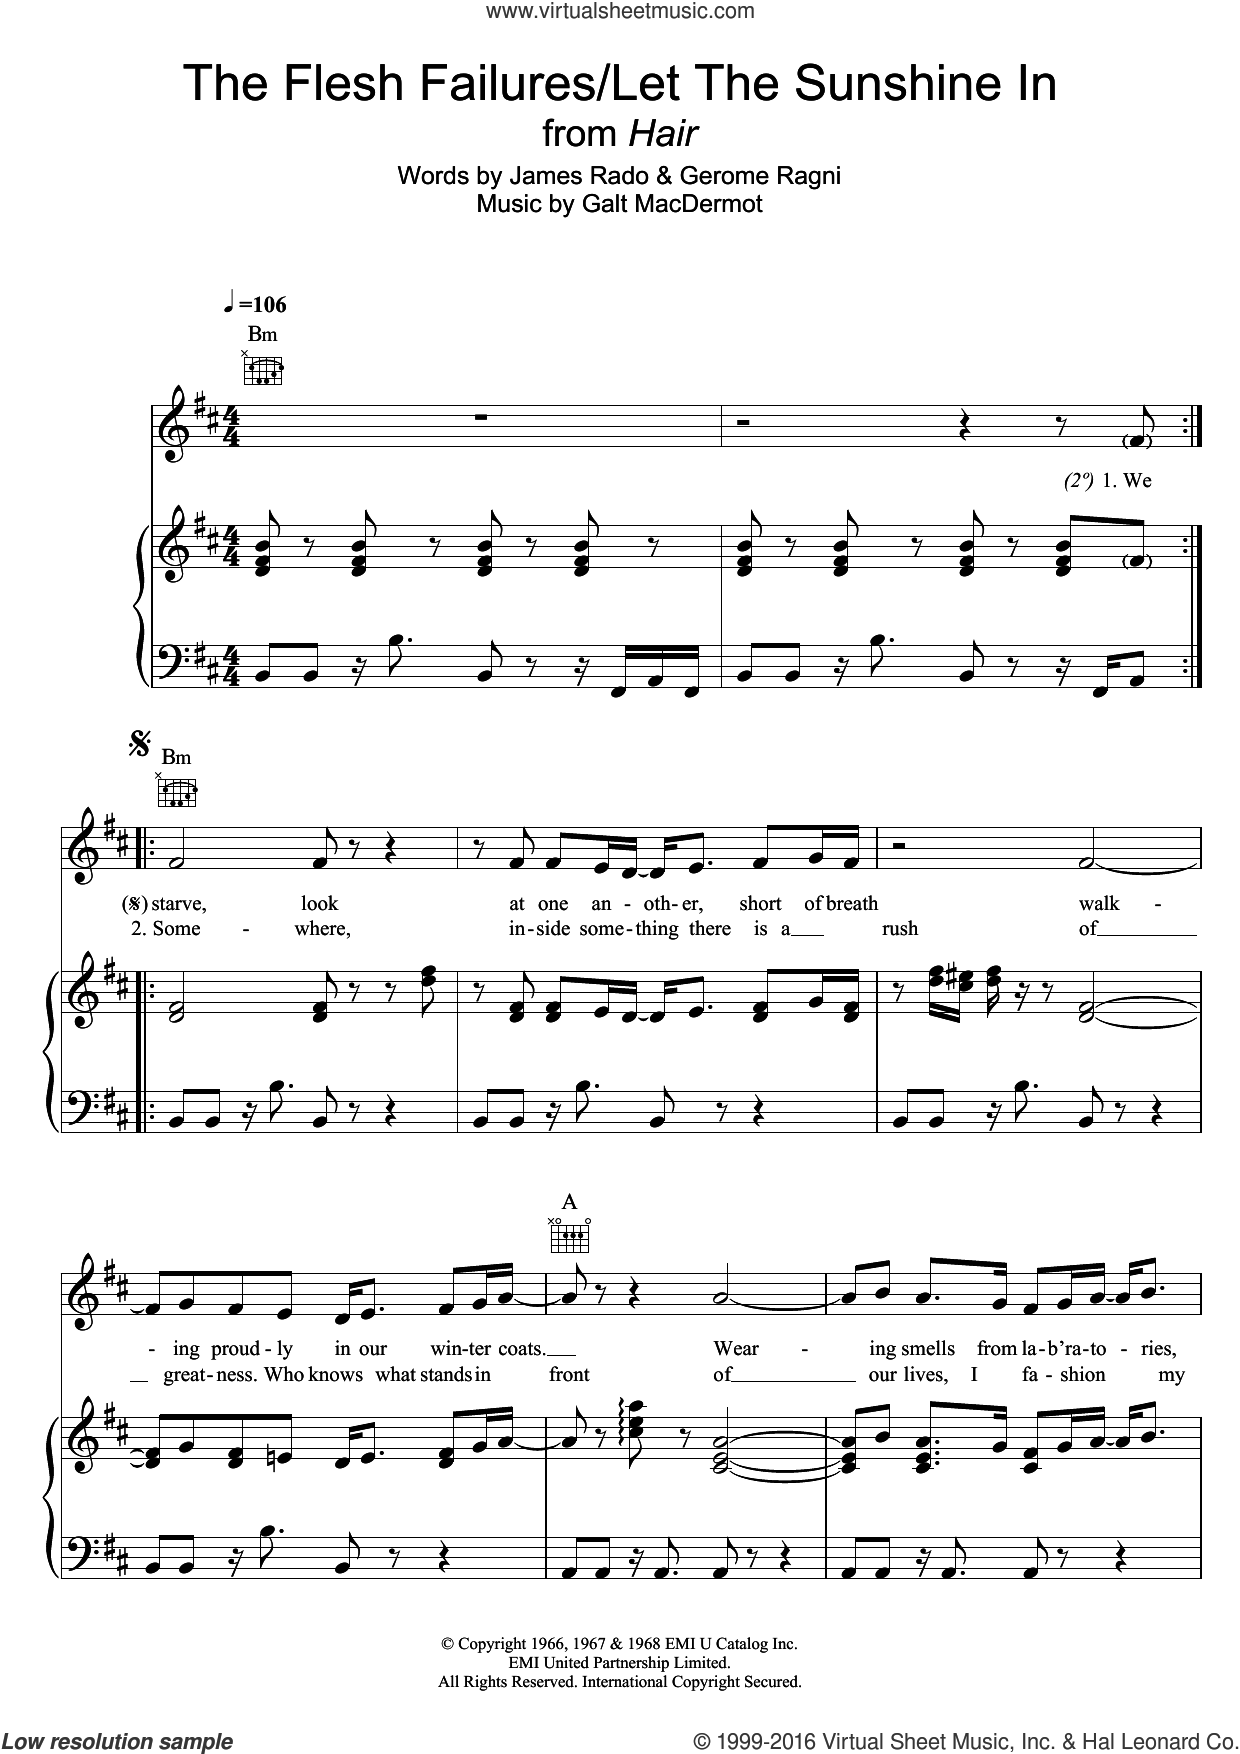 The Flesh Failures/Let The Sunshine In (from 'Hair') sheet music for voice, piano or guitar by James Rado, Galt MacDermot and Gerome Ragni. Score Image Preview.